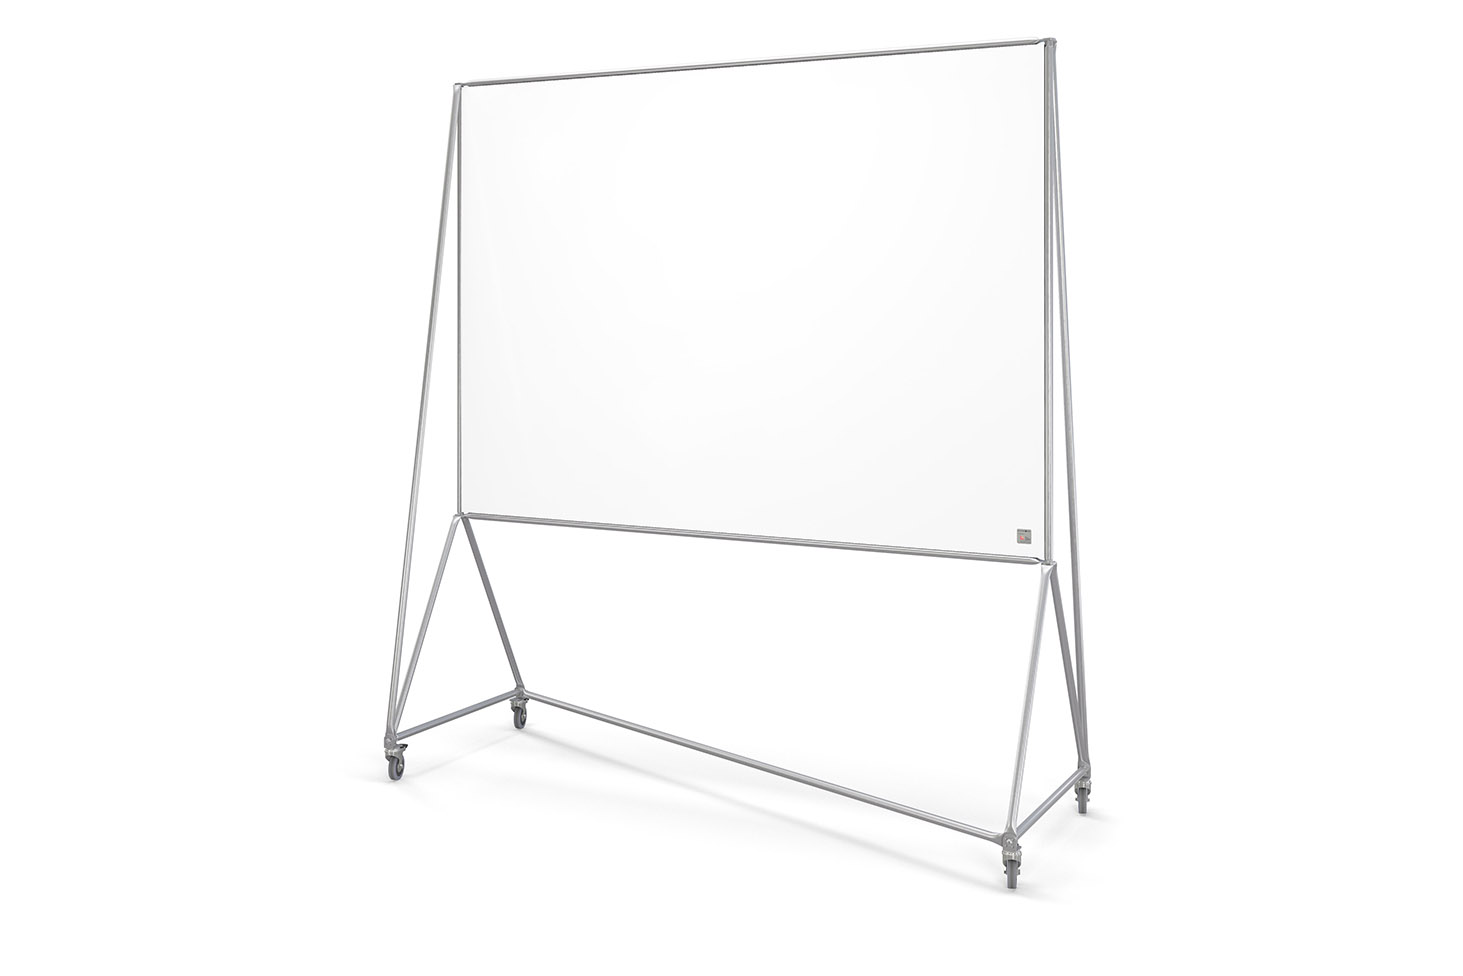 Glas Whiteboard Design Thinking Line Boards By System 180